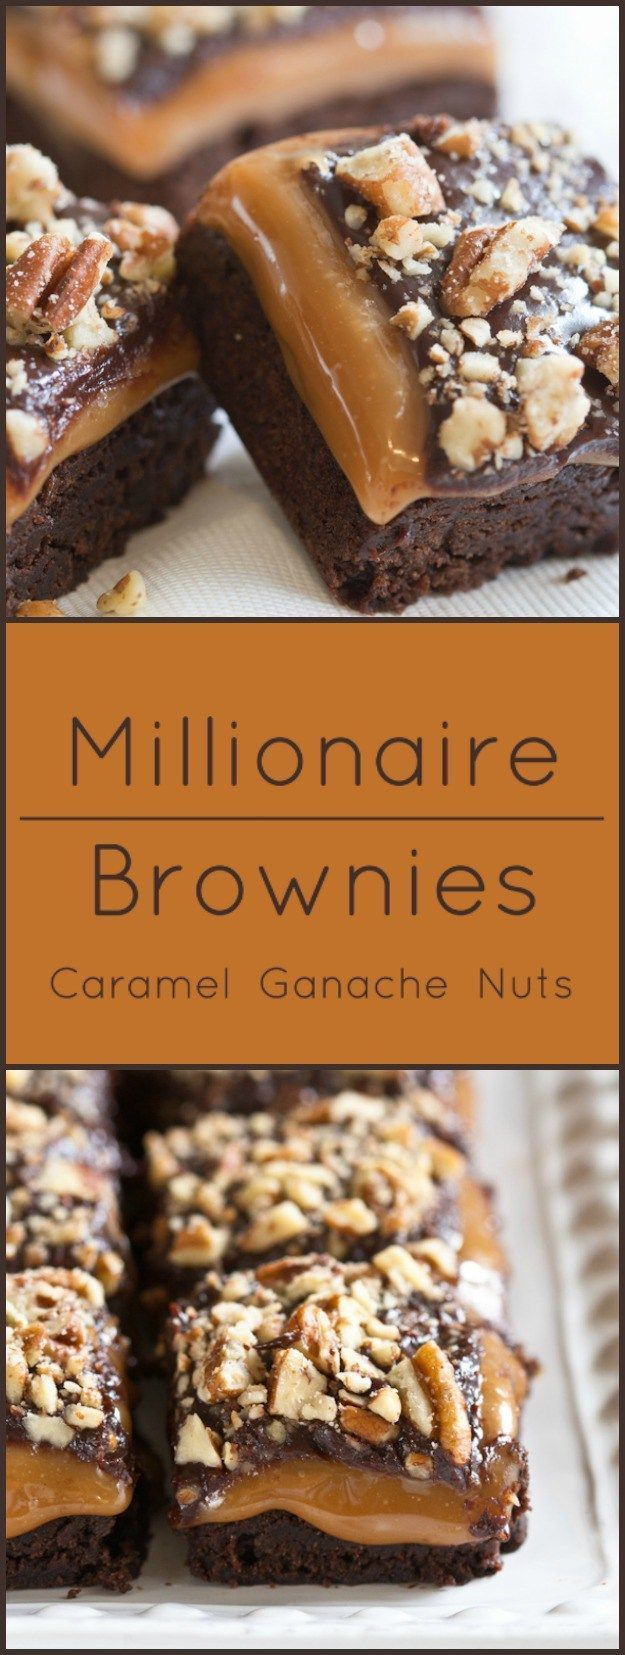 Millionaire Brownies. Moist brownies layered with caramel, ganache and nuts.